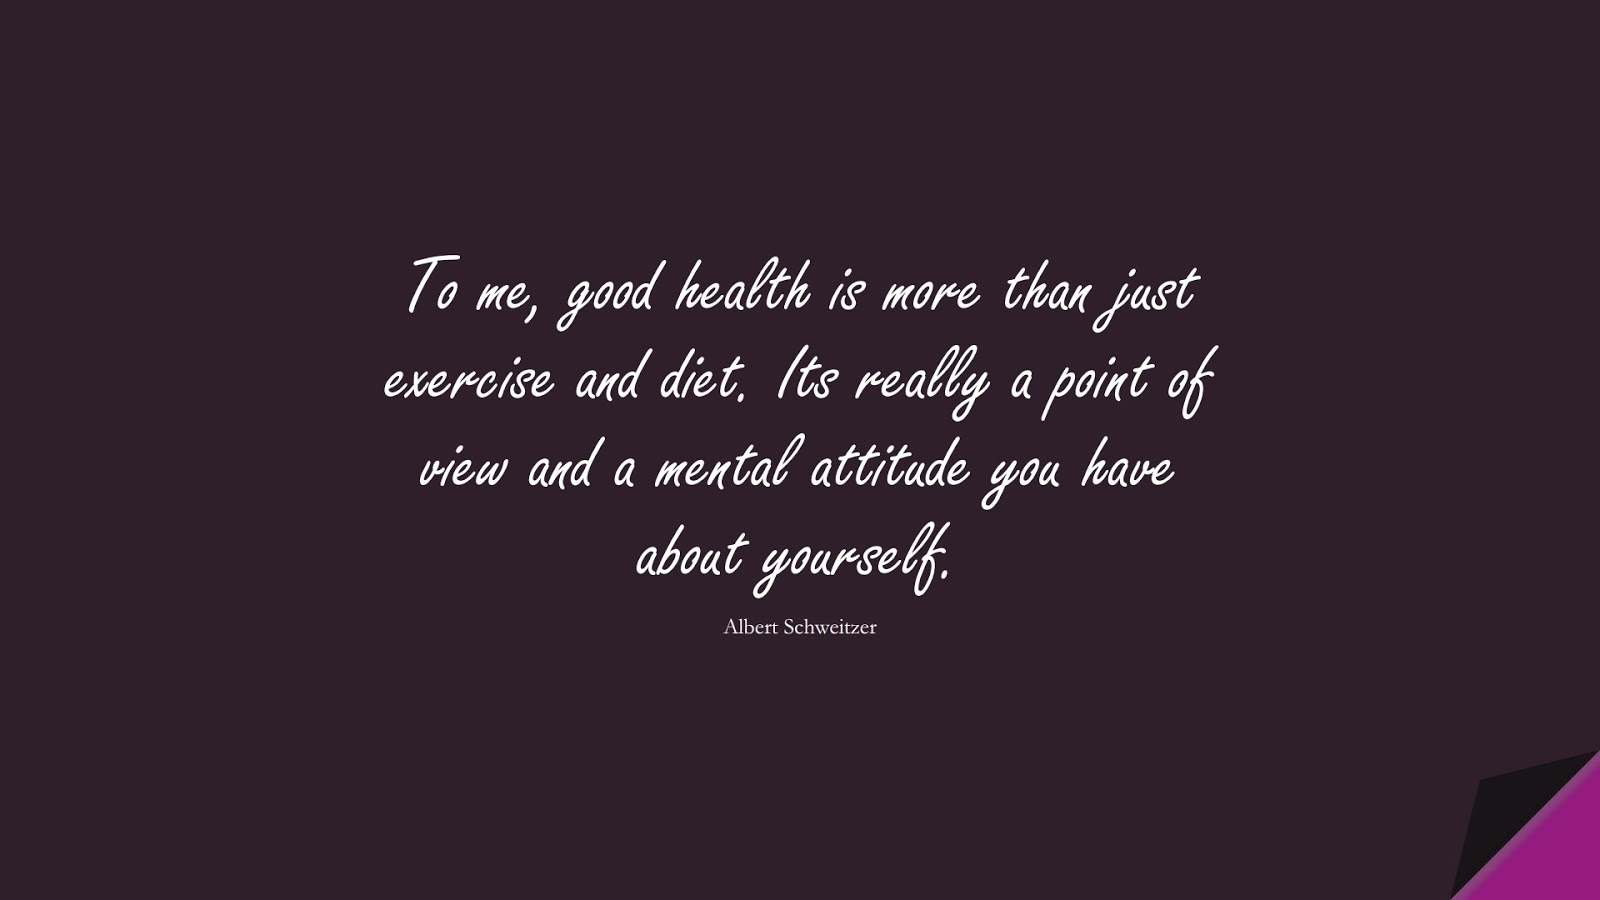 To me, good health is more than just exercise and diet. Its really a point of view and a mental attitude you have about yourself. (Albert Schweitzer);  #HealthQuotes